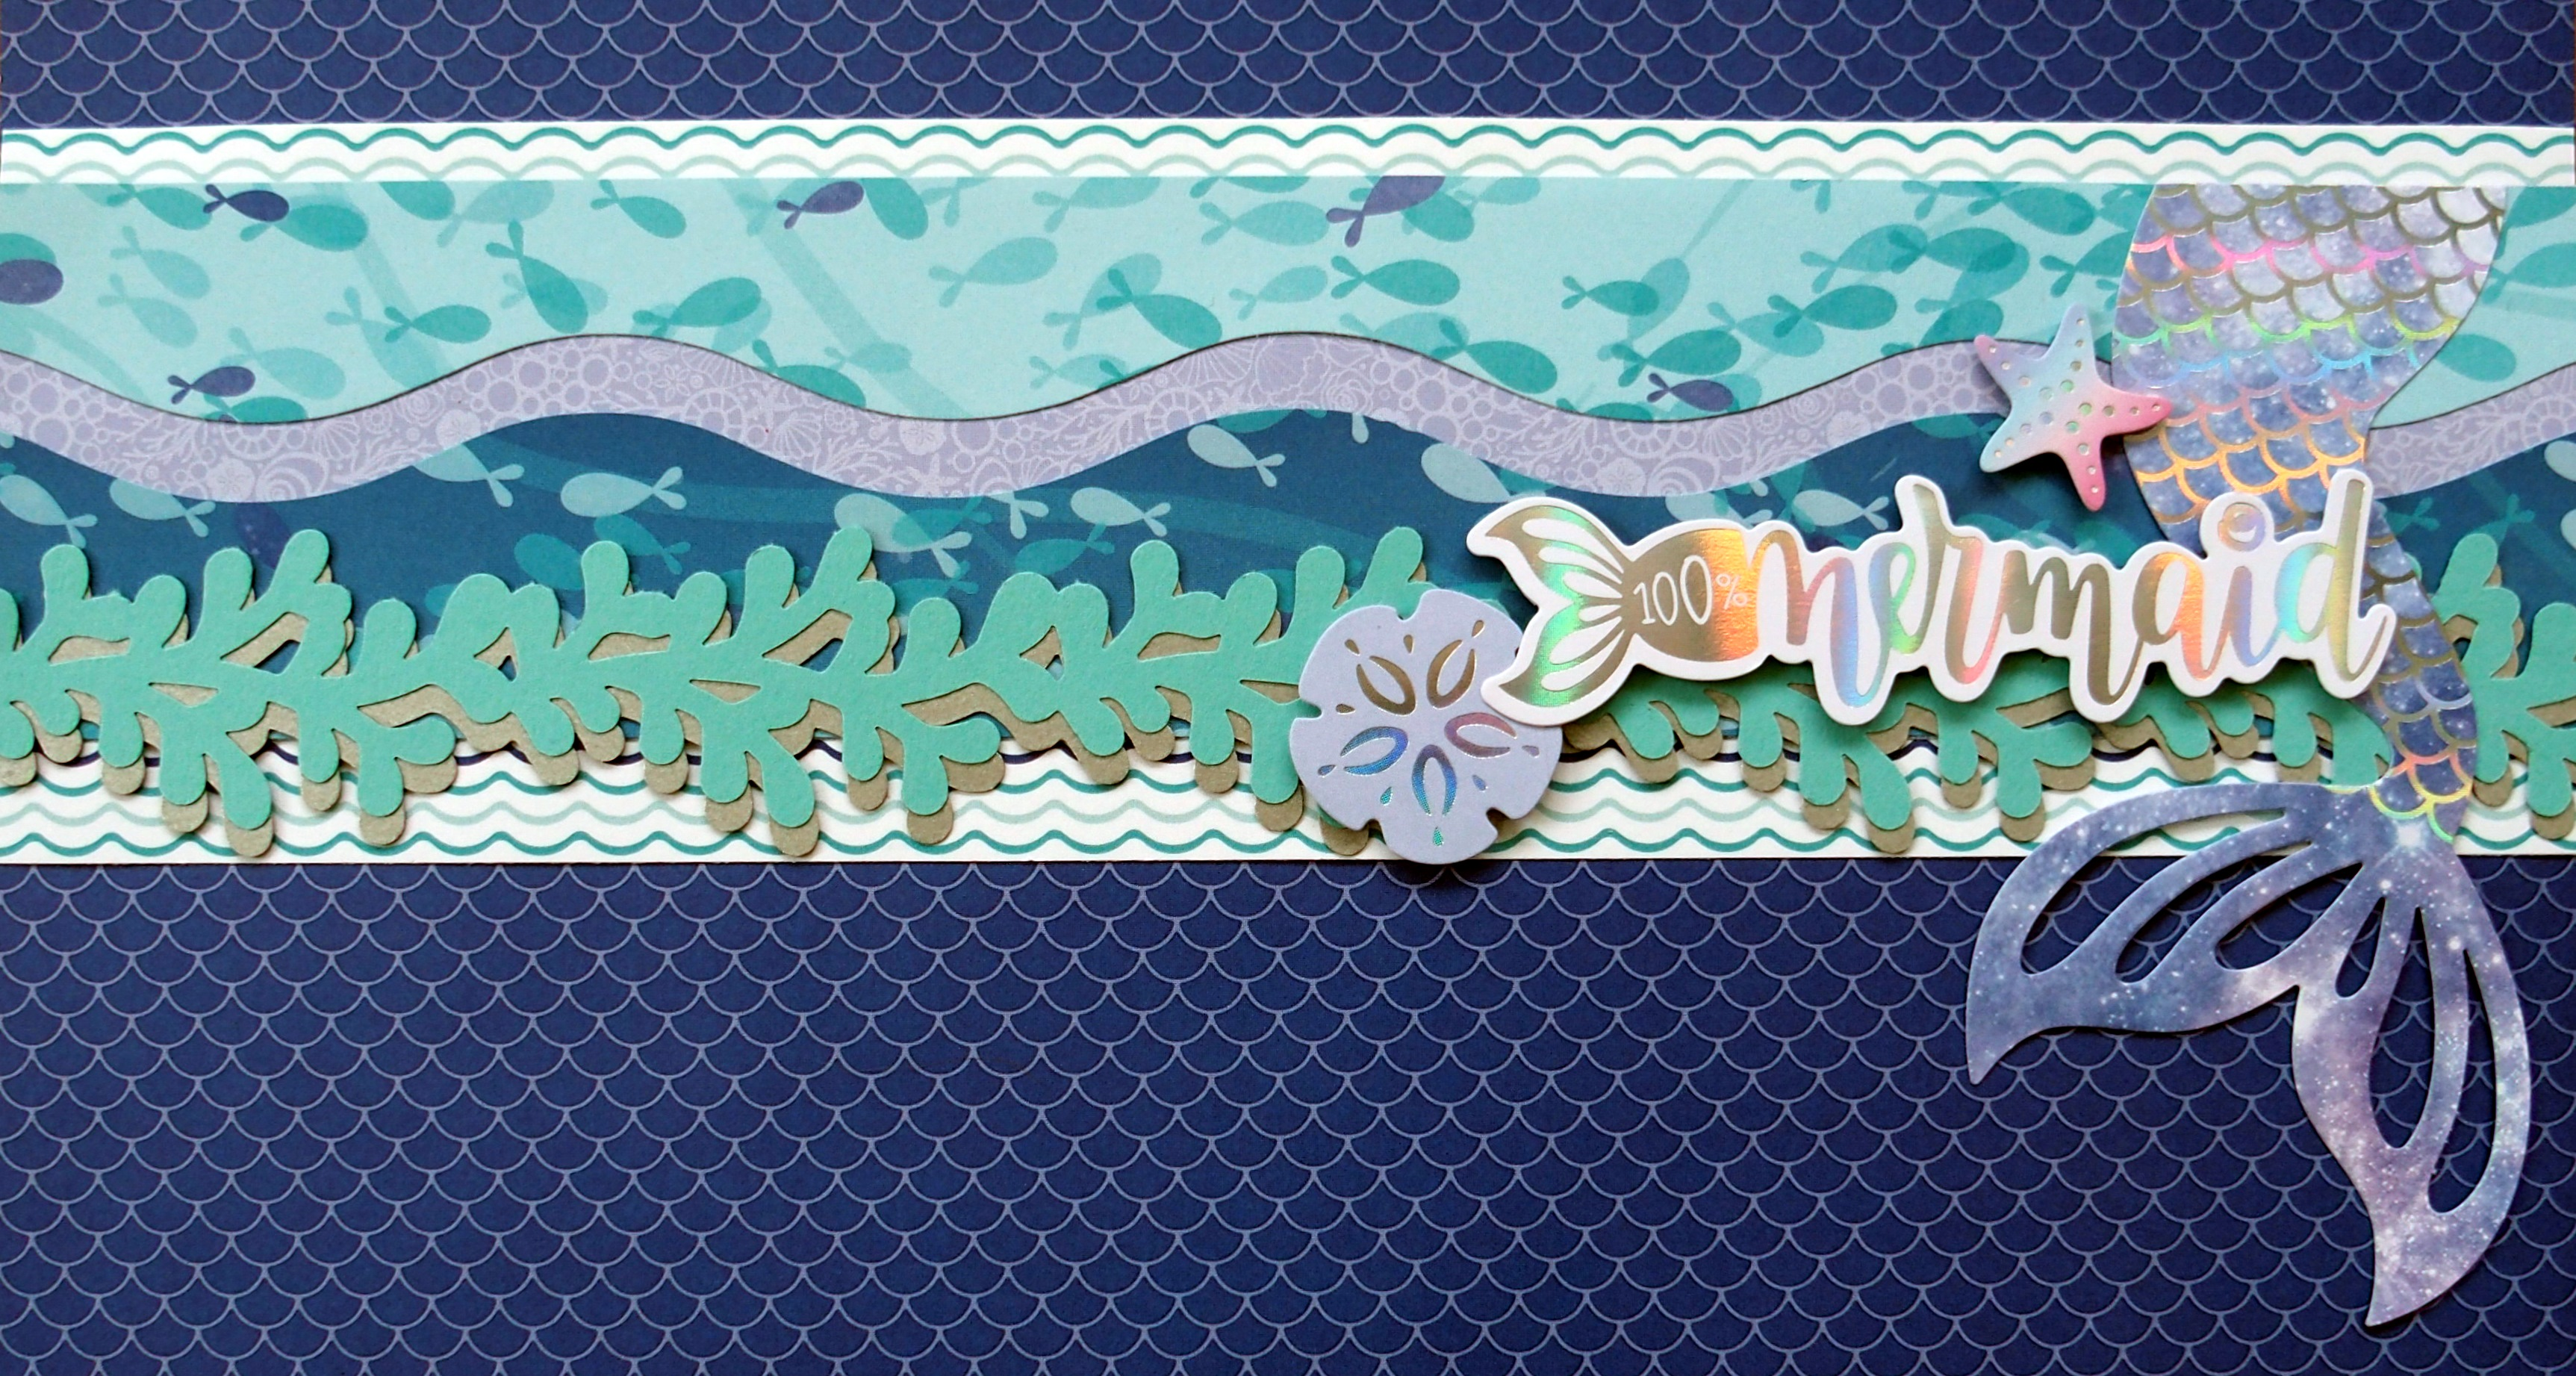 Mermaid-Cove-Collection-Scrapbooking-Borders-Creative-Memories-3